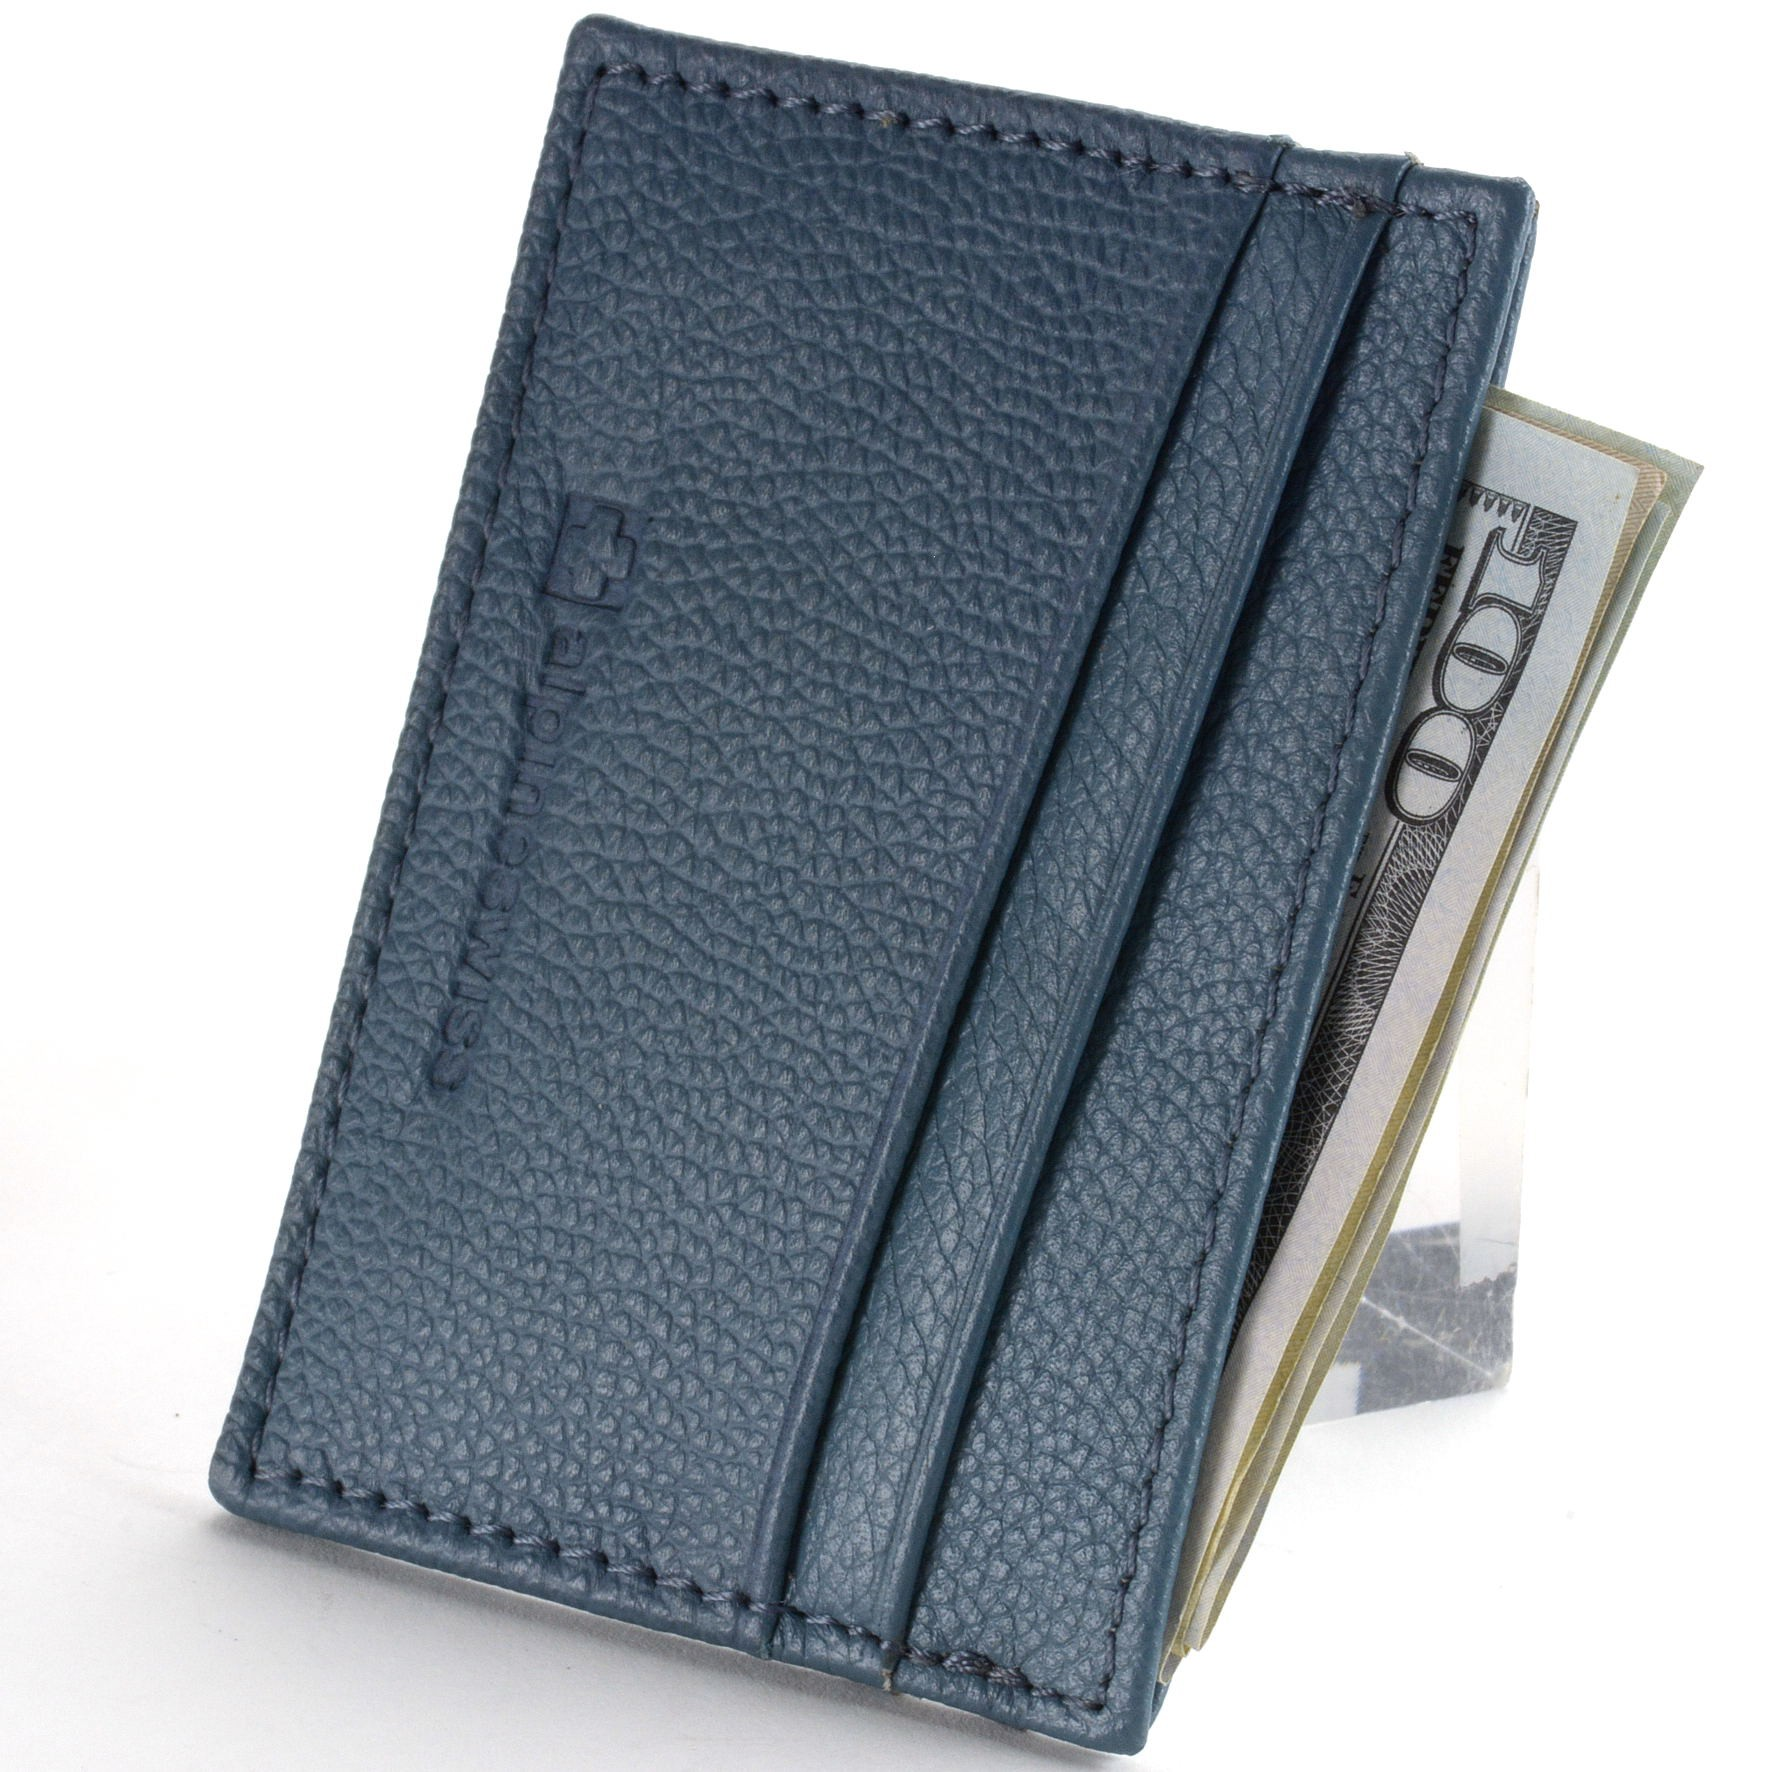 Alpine-Swiss-Super-Slim-Card-Case-Genuine-Leather-ID-Holder-Front-Pocket-Wallet thumbnail 13